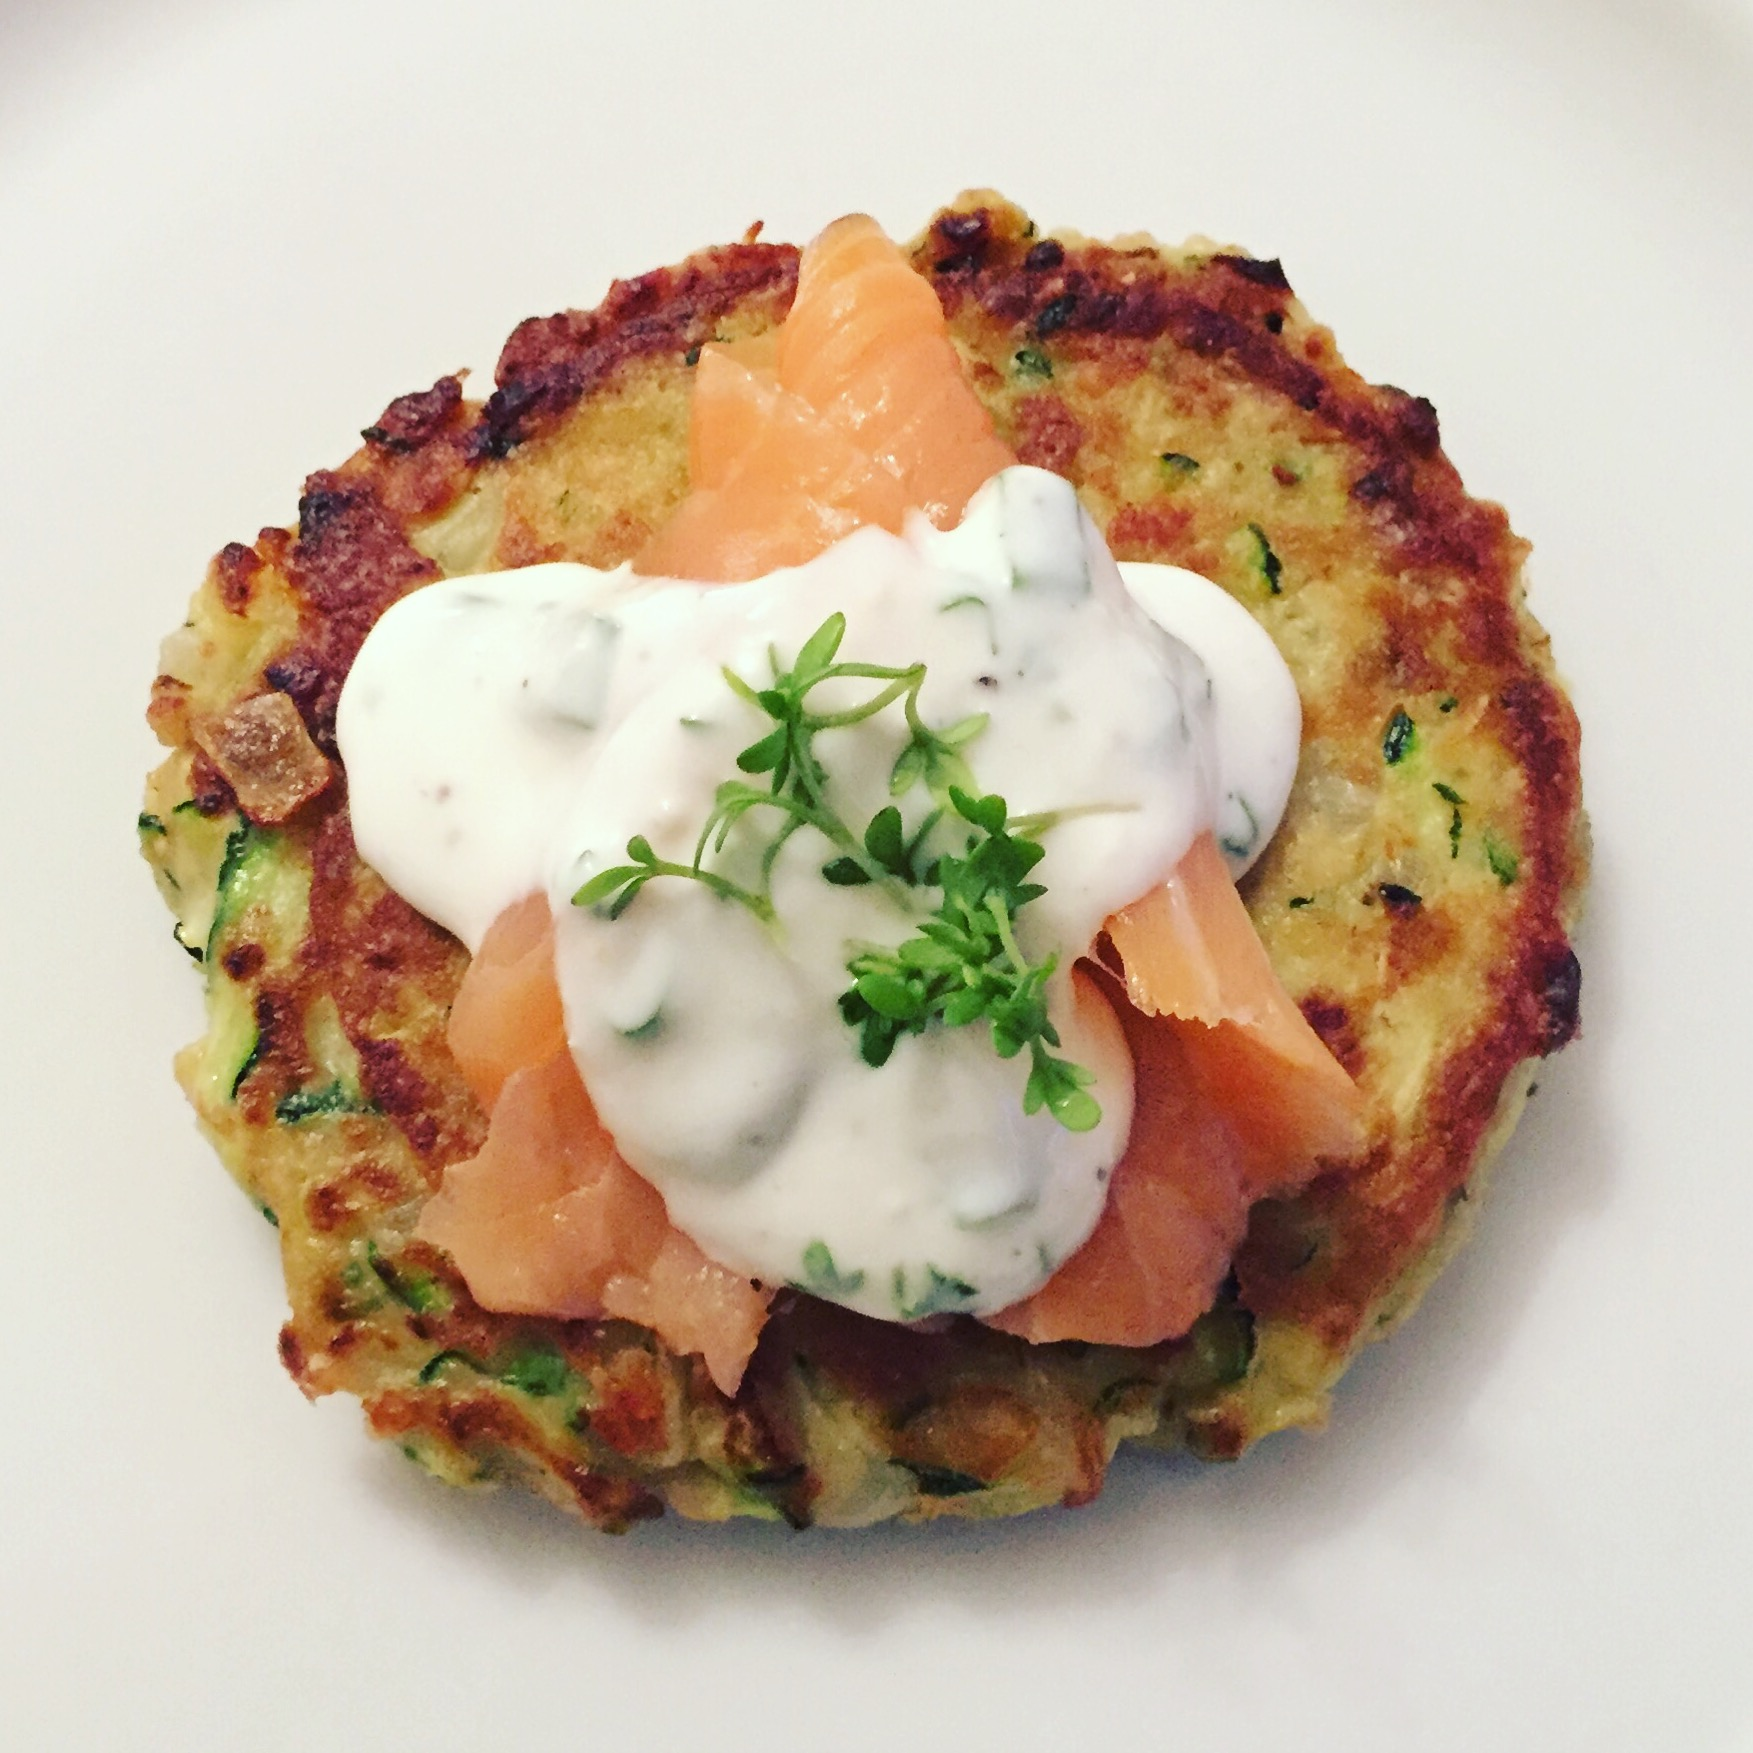 LOW CARB FRITTERS WITH SMOKED SALMON AND HORSERADISH YOGURT